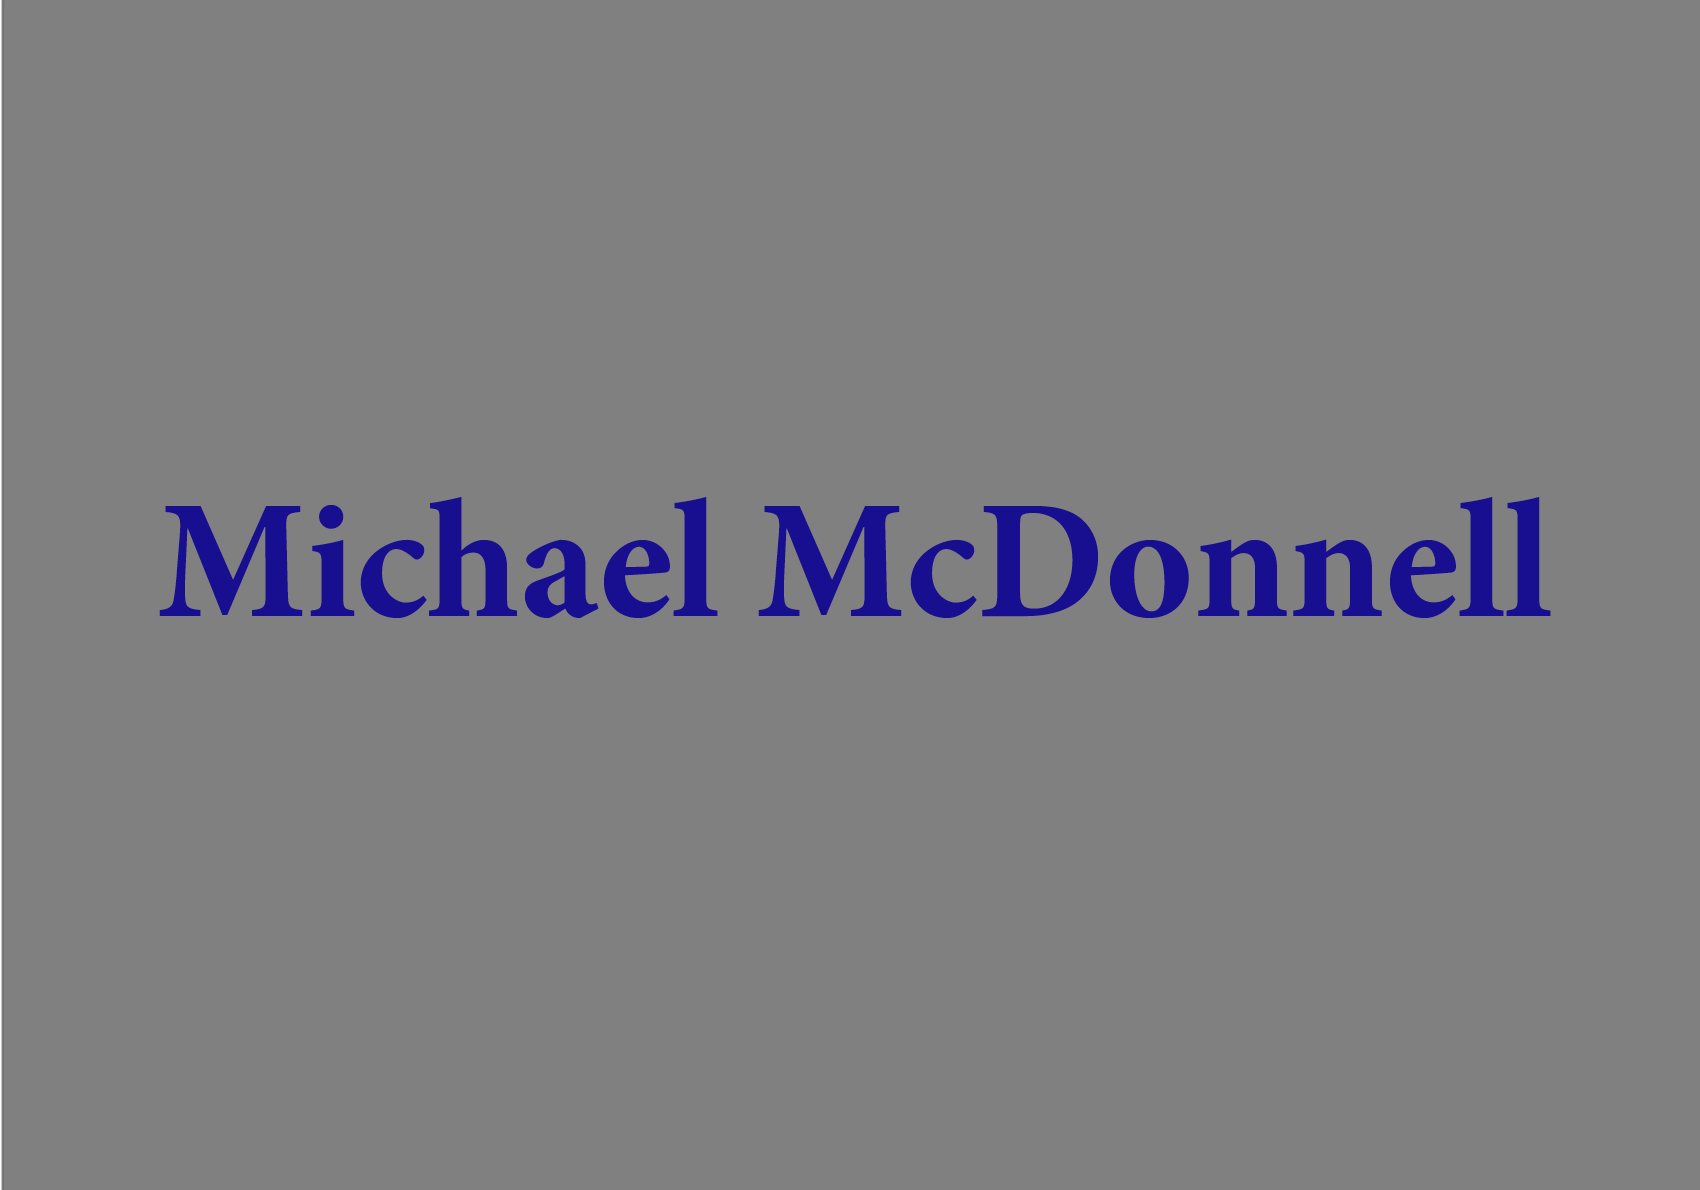 michael mcdonnell.png